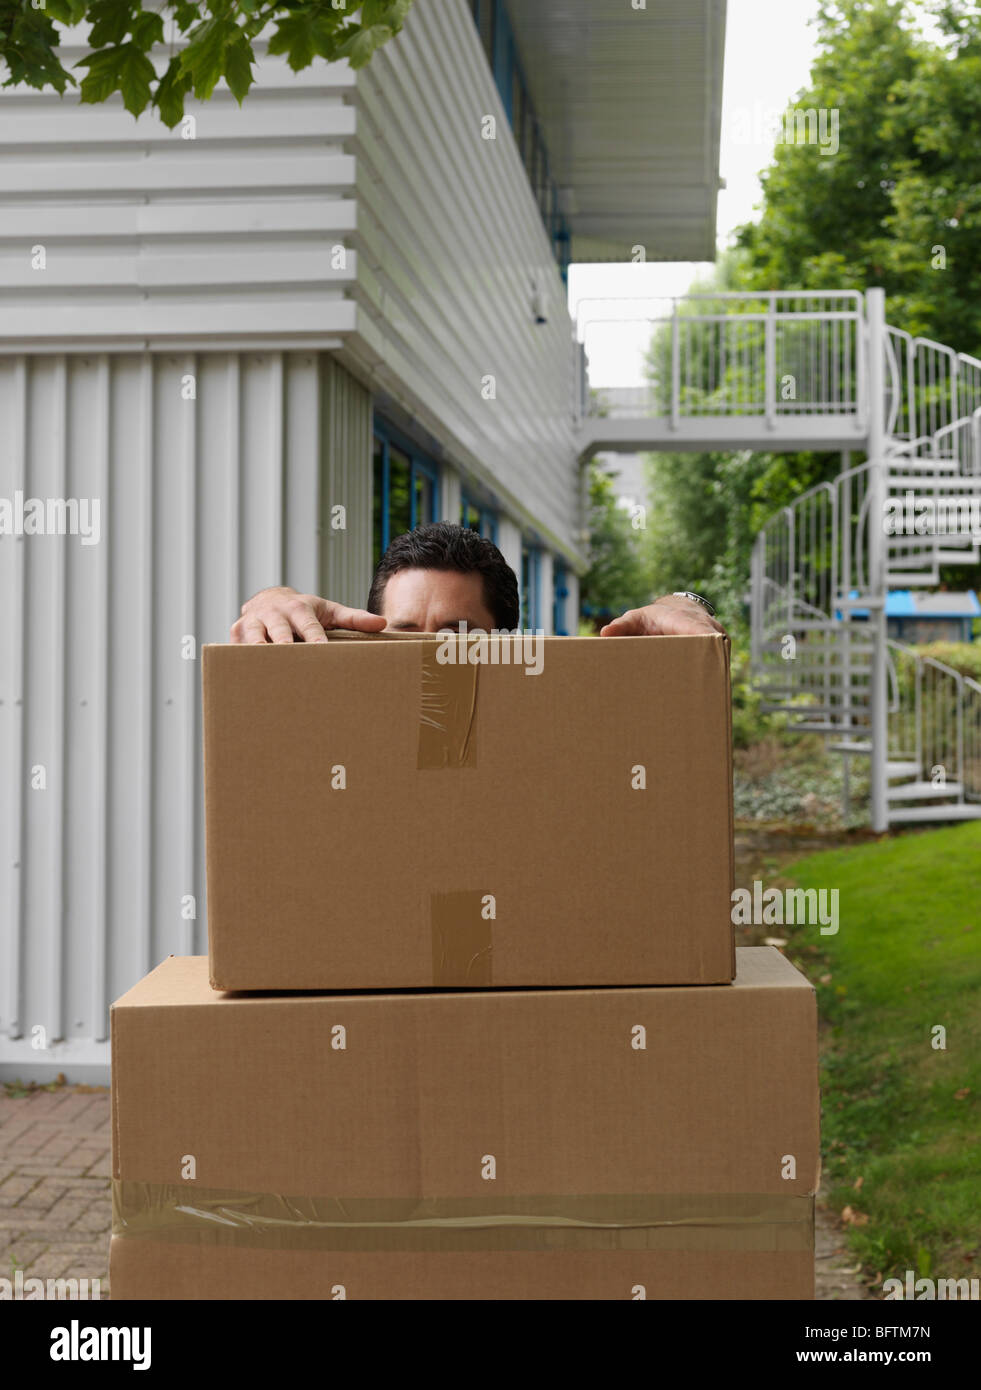 man with stack of boxes - Stock Image